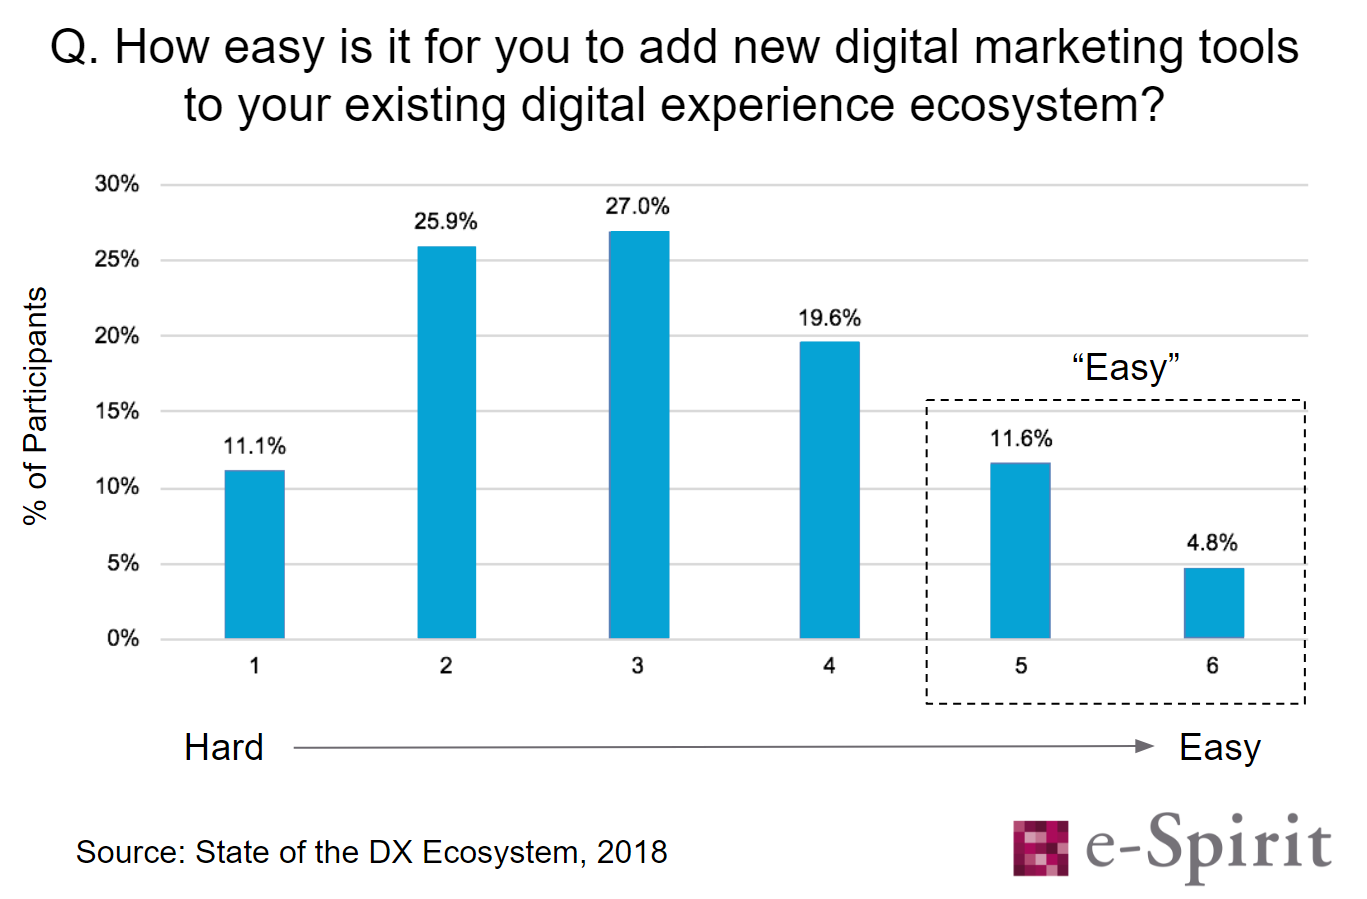 How easy is it for you to add new digital marketing tools to your existing digital experience ecosystem? - survey results